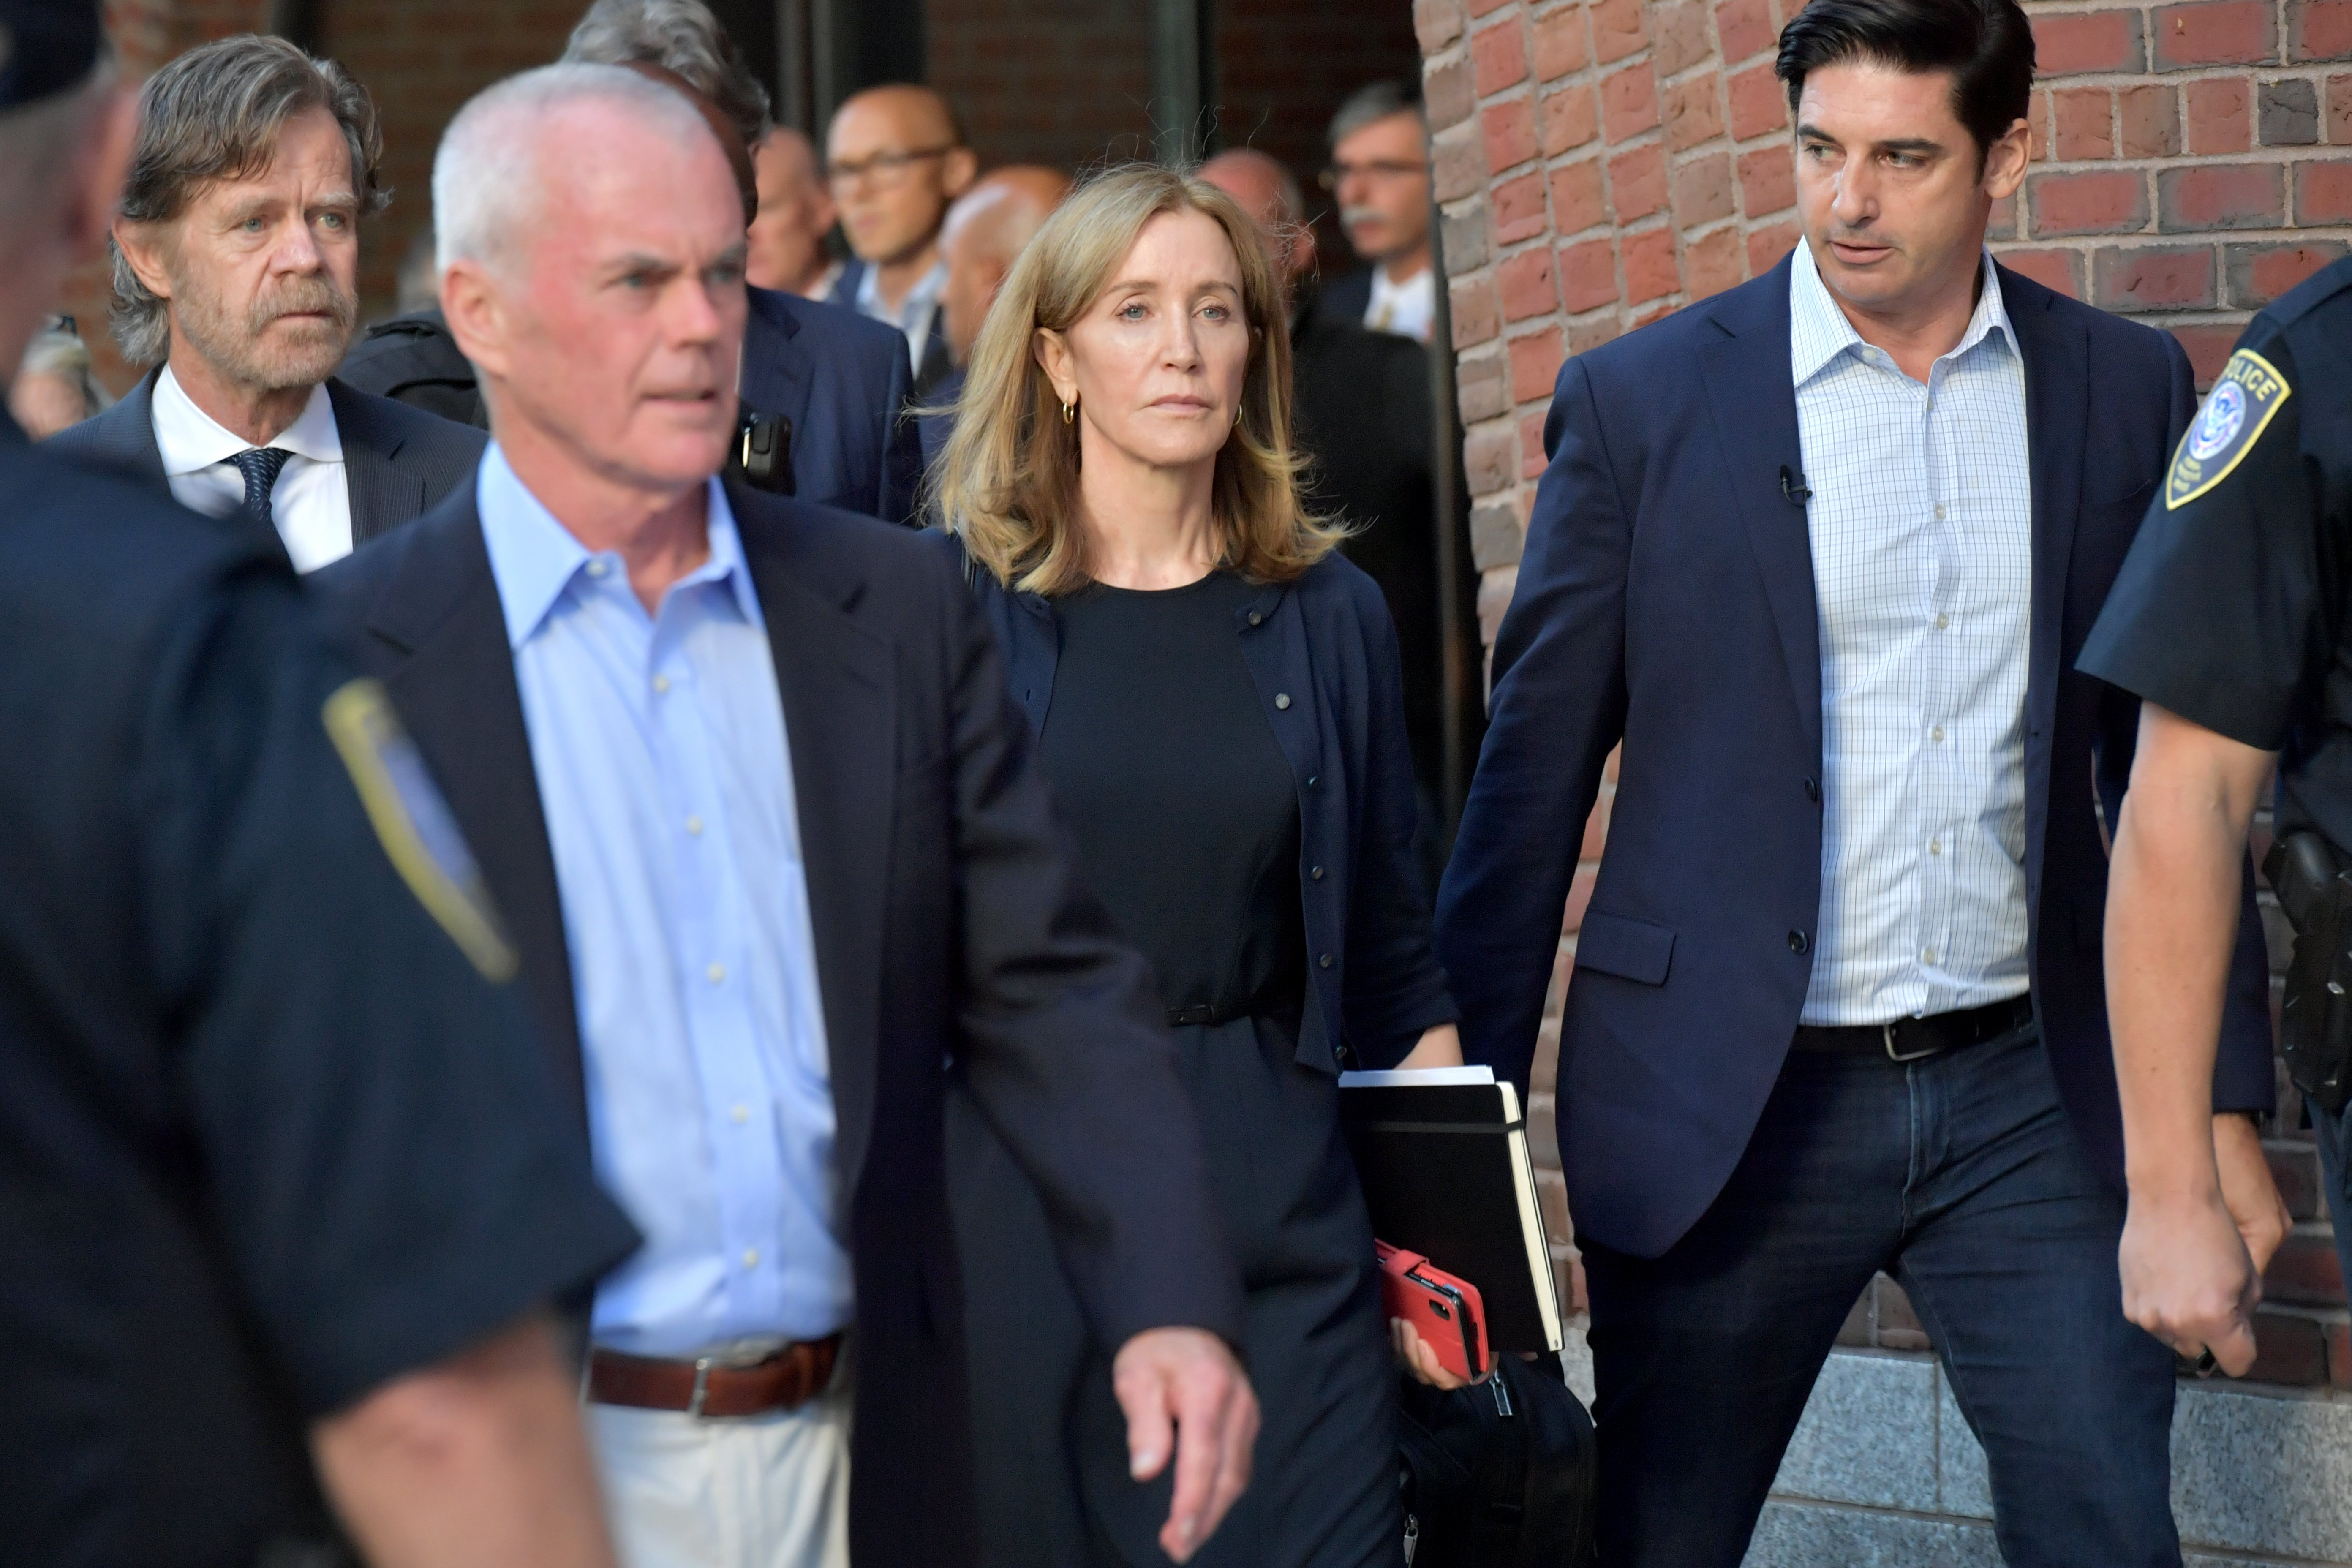 Felicity Huffman and William Macy exit John Moakley U.S. Courthouse  on September 13, 2019 | Photo: GettyImages